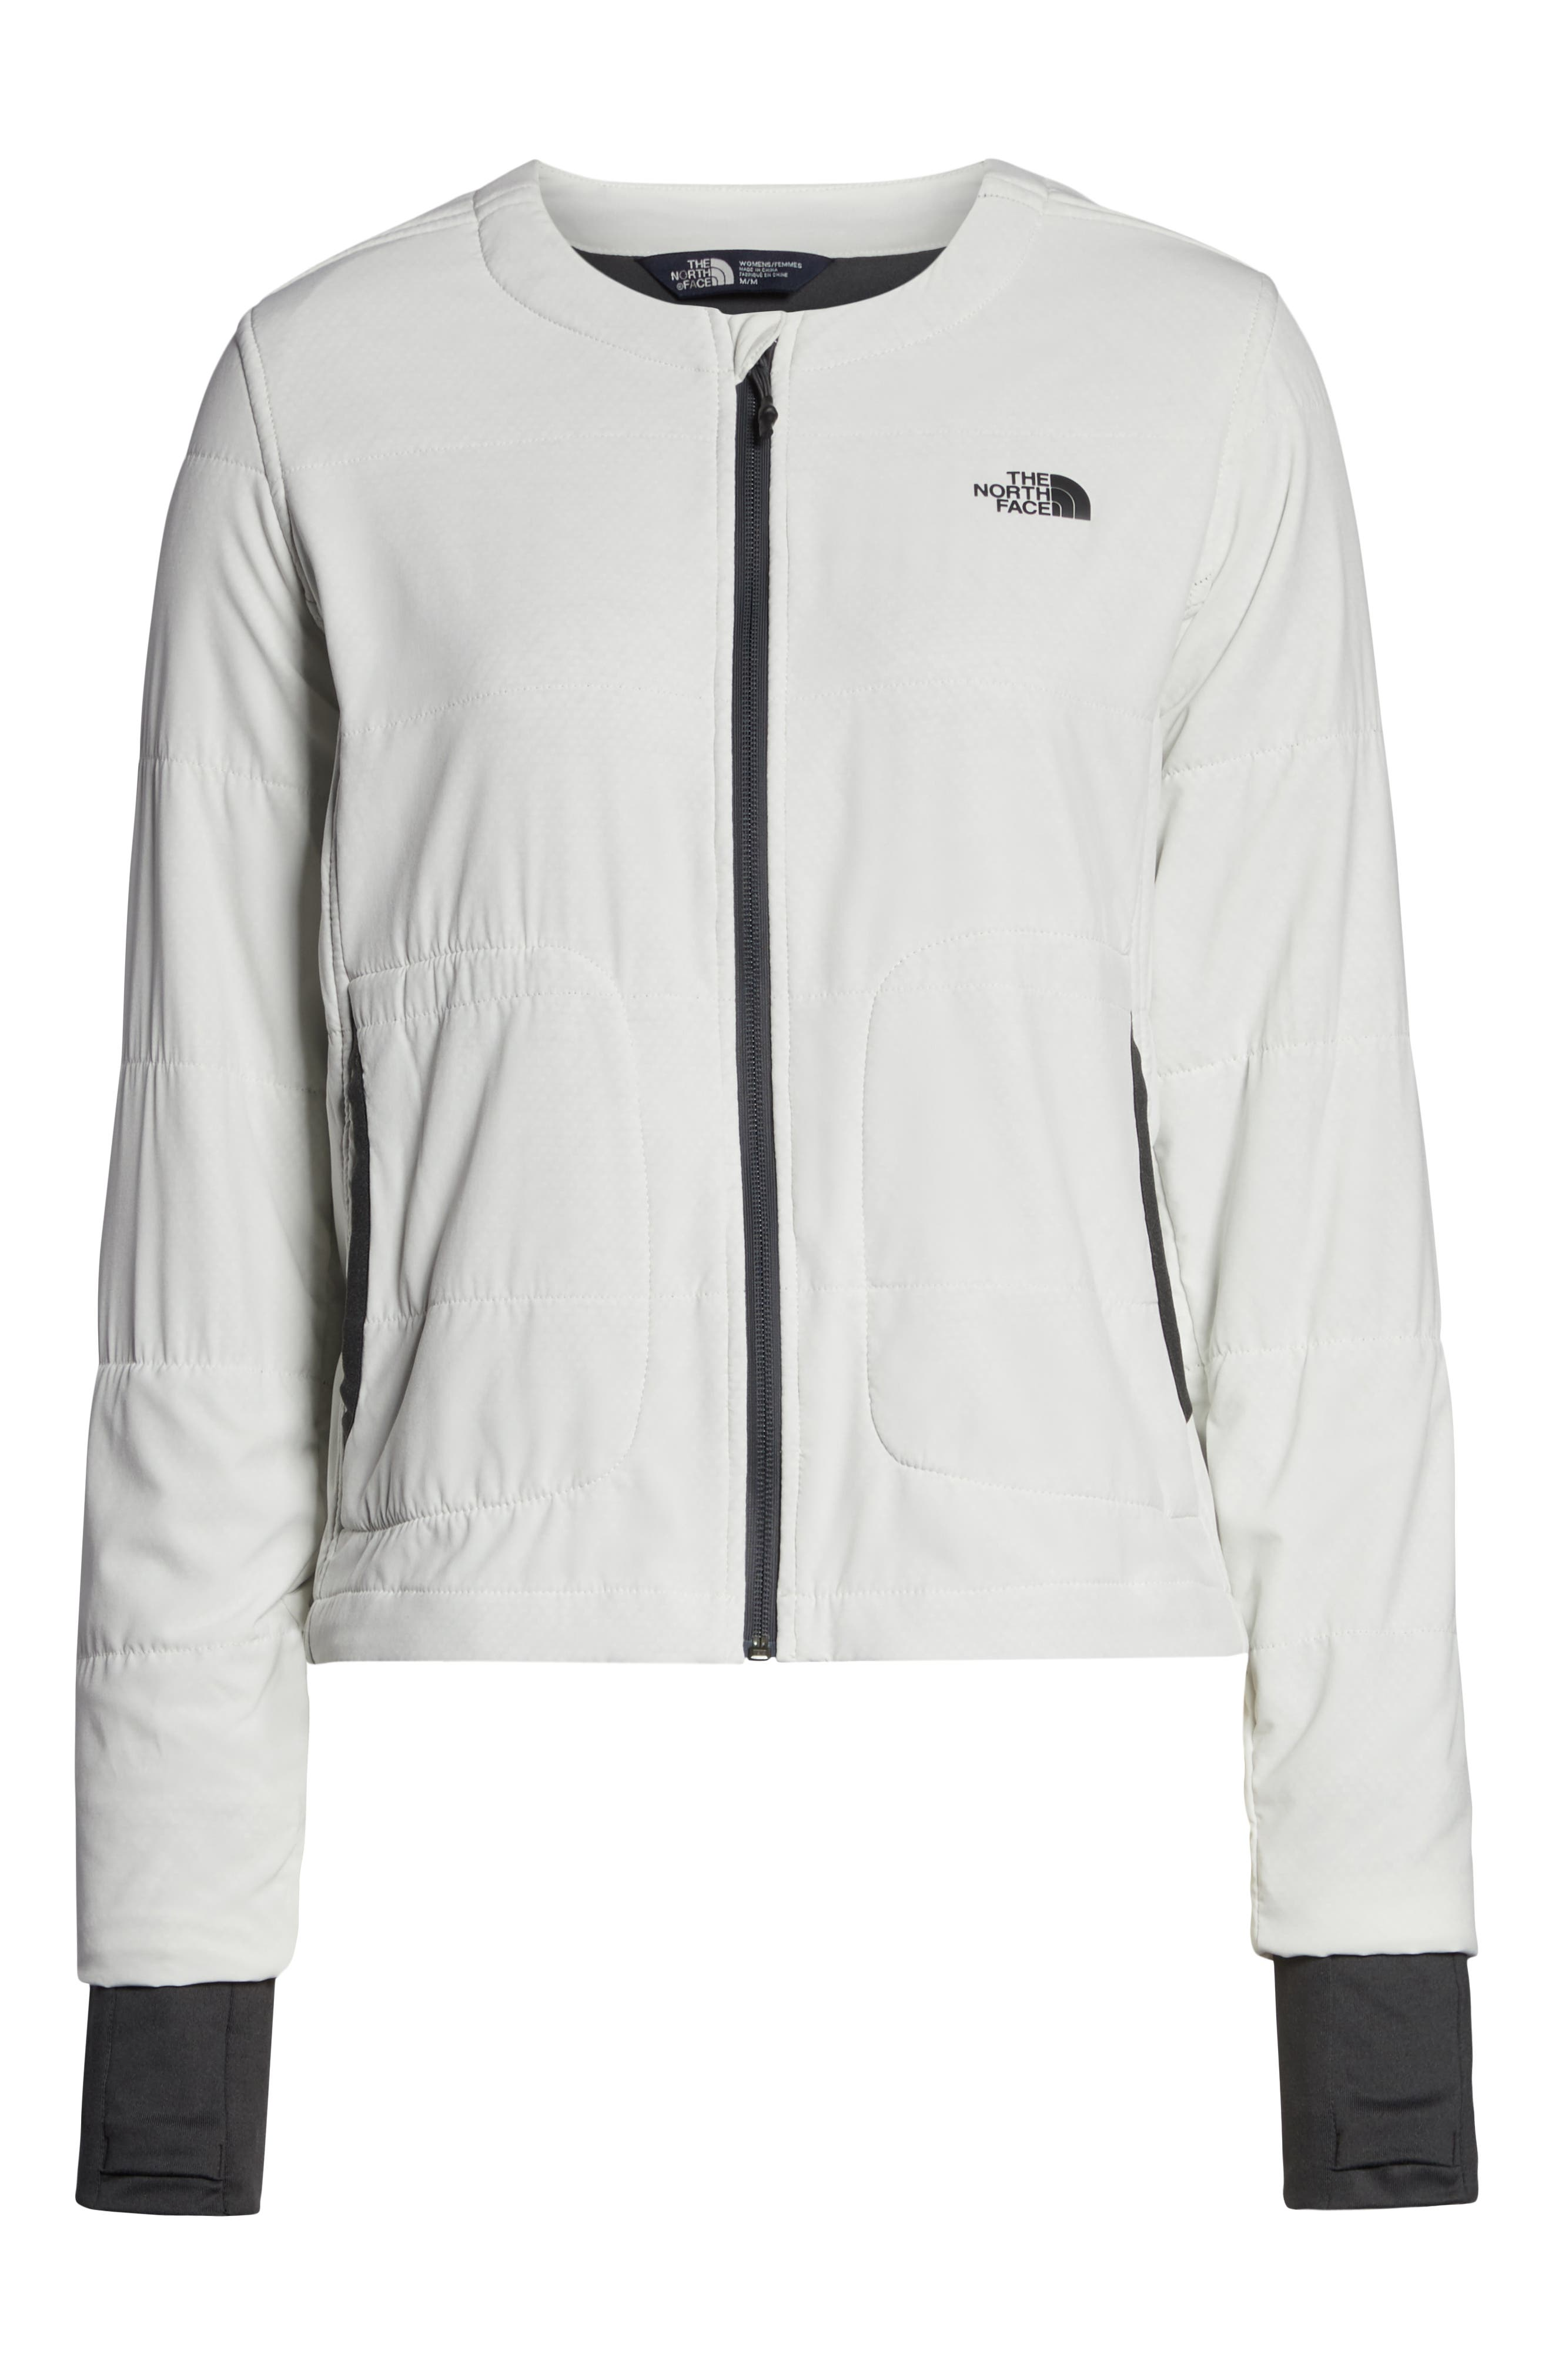 THE NORTH FACE, Mountain Insulated Collarless Zip Jacket, Alternate thumbnail 6, color, 050